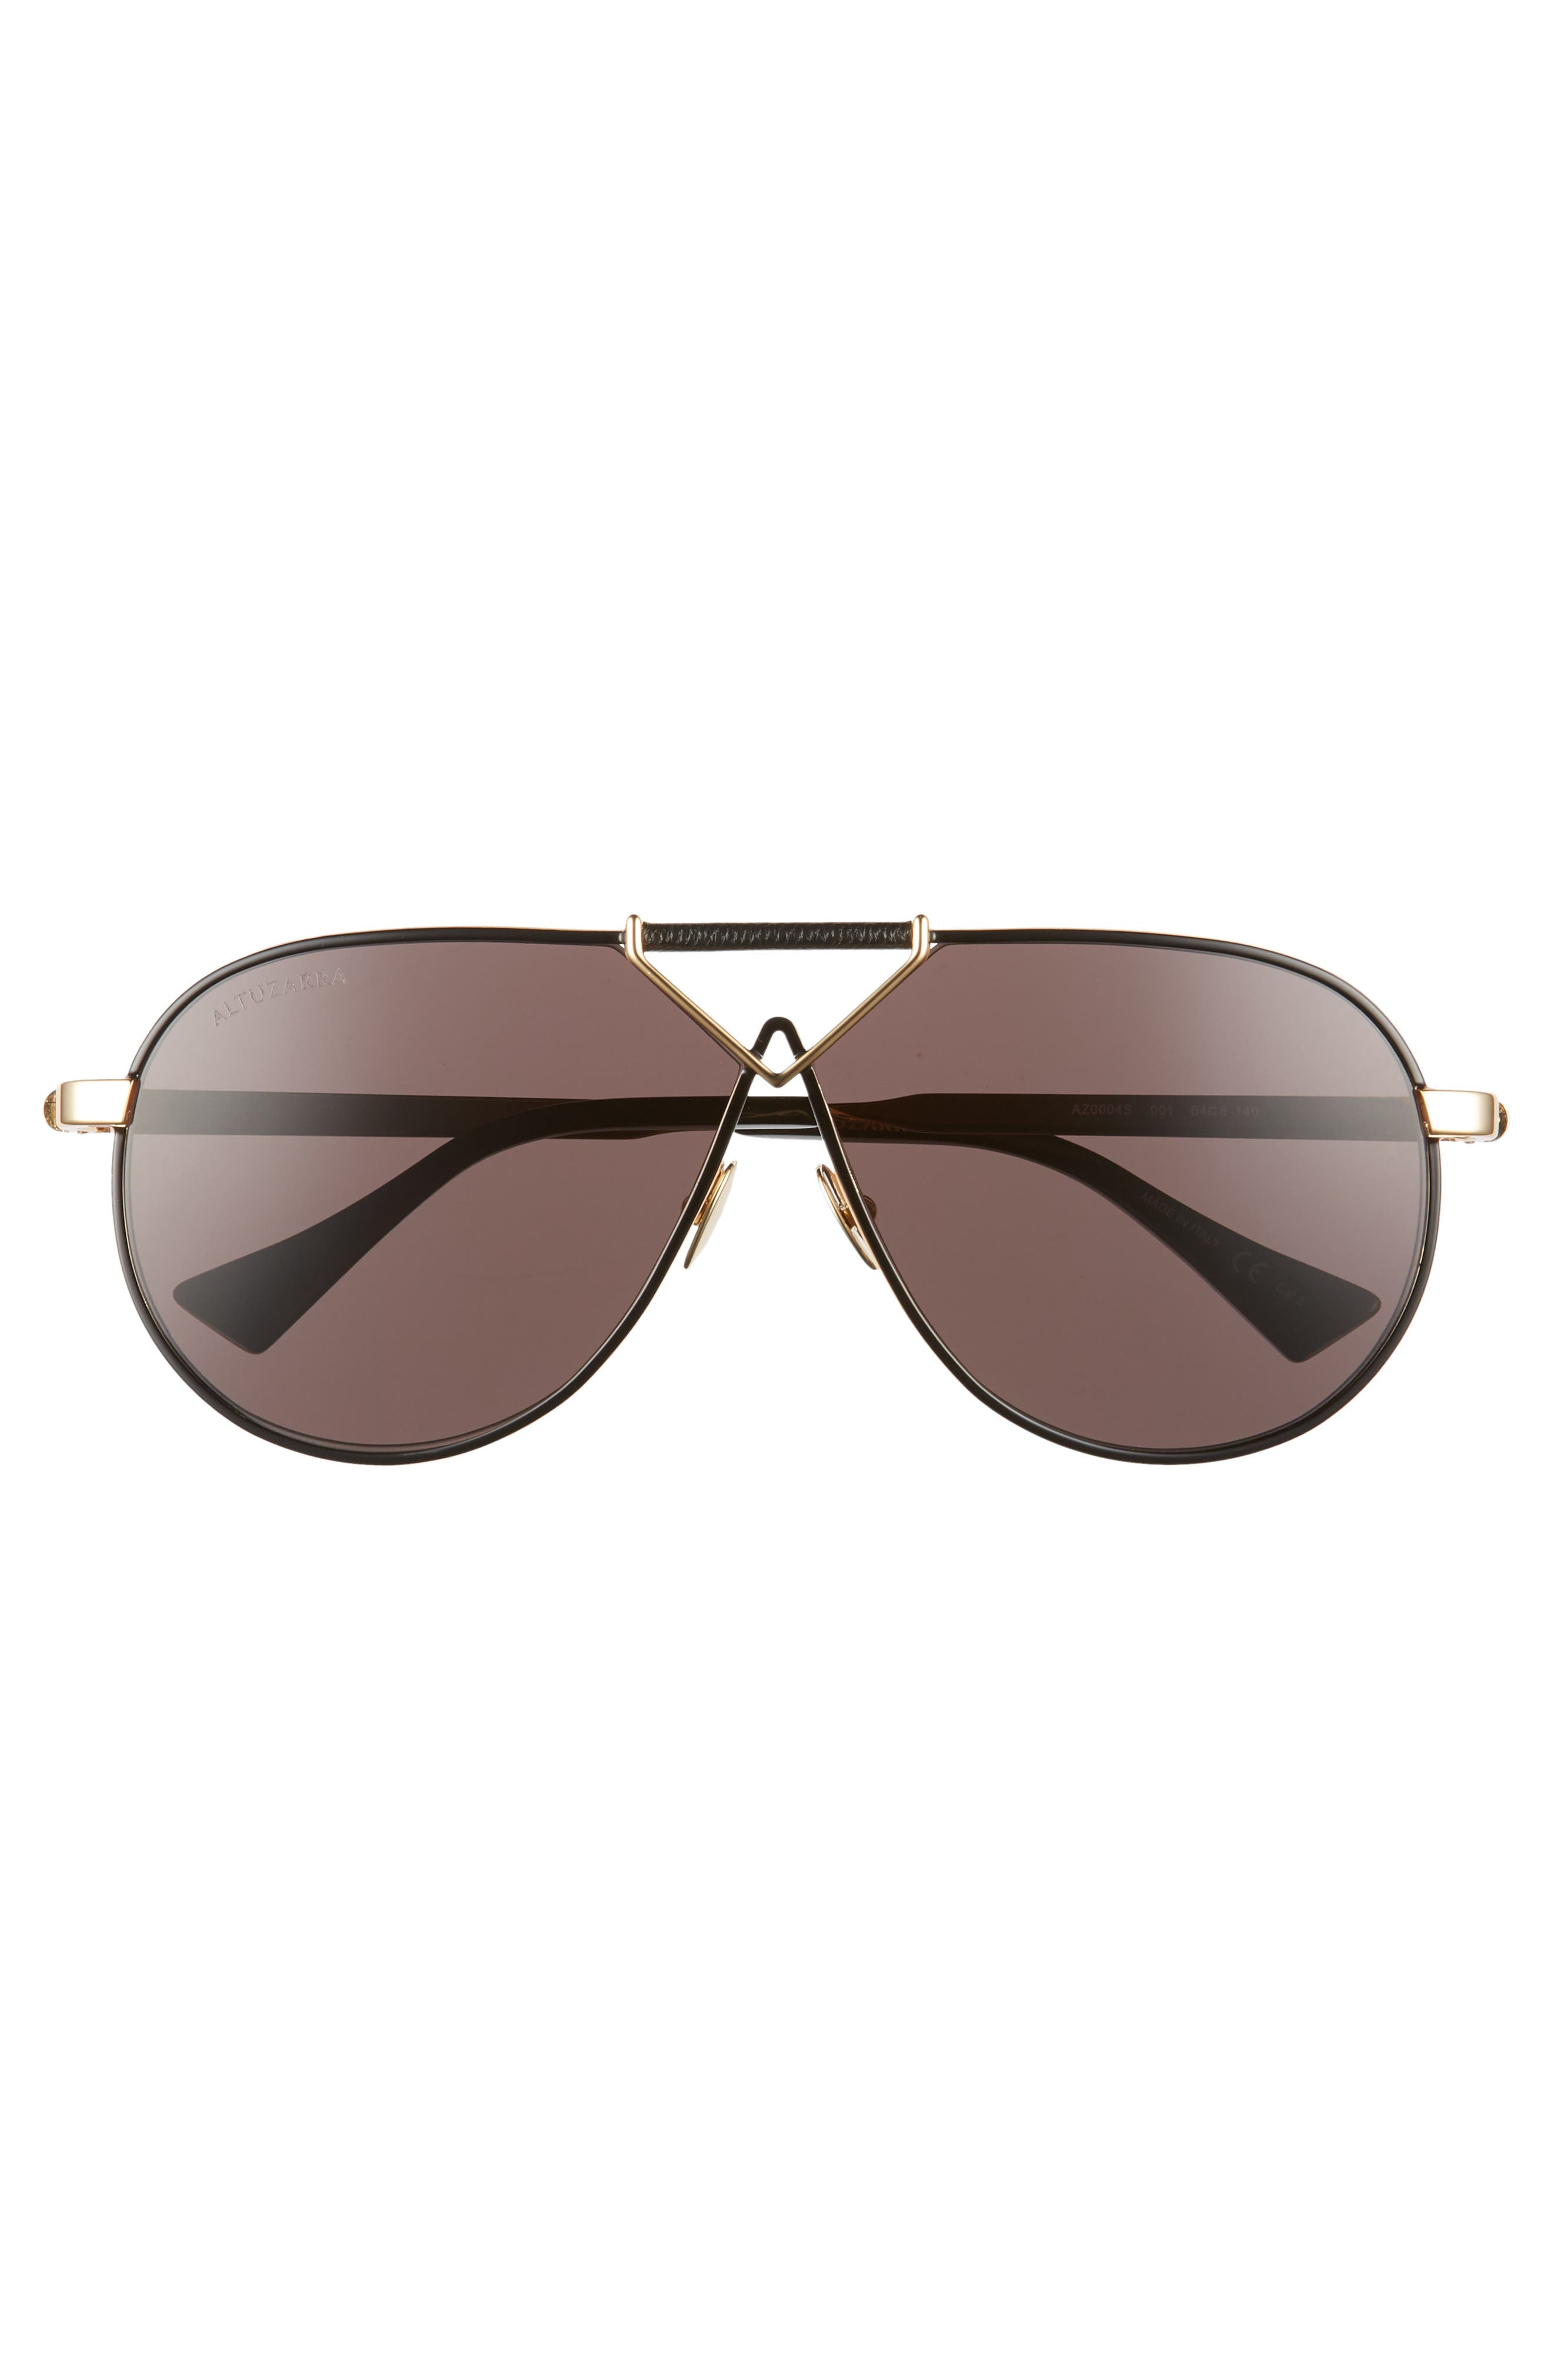 ALTUZARRA,                             64mm Aviator Sunglasses,                             Alternate thumbnail 3, color,                             BLACK/ GOLD